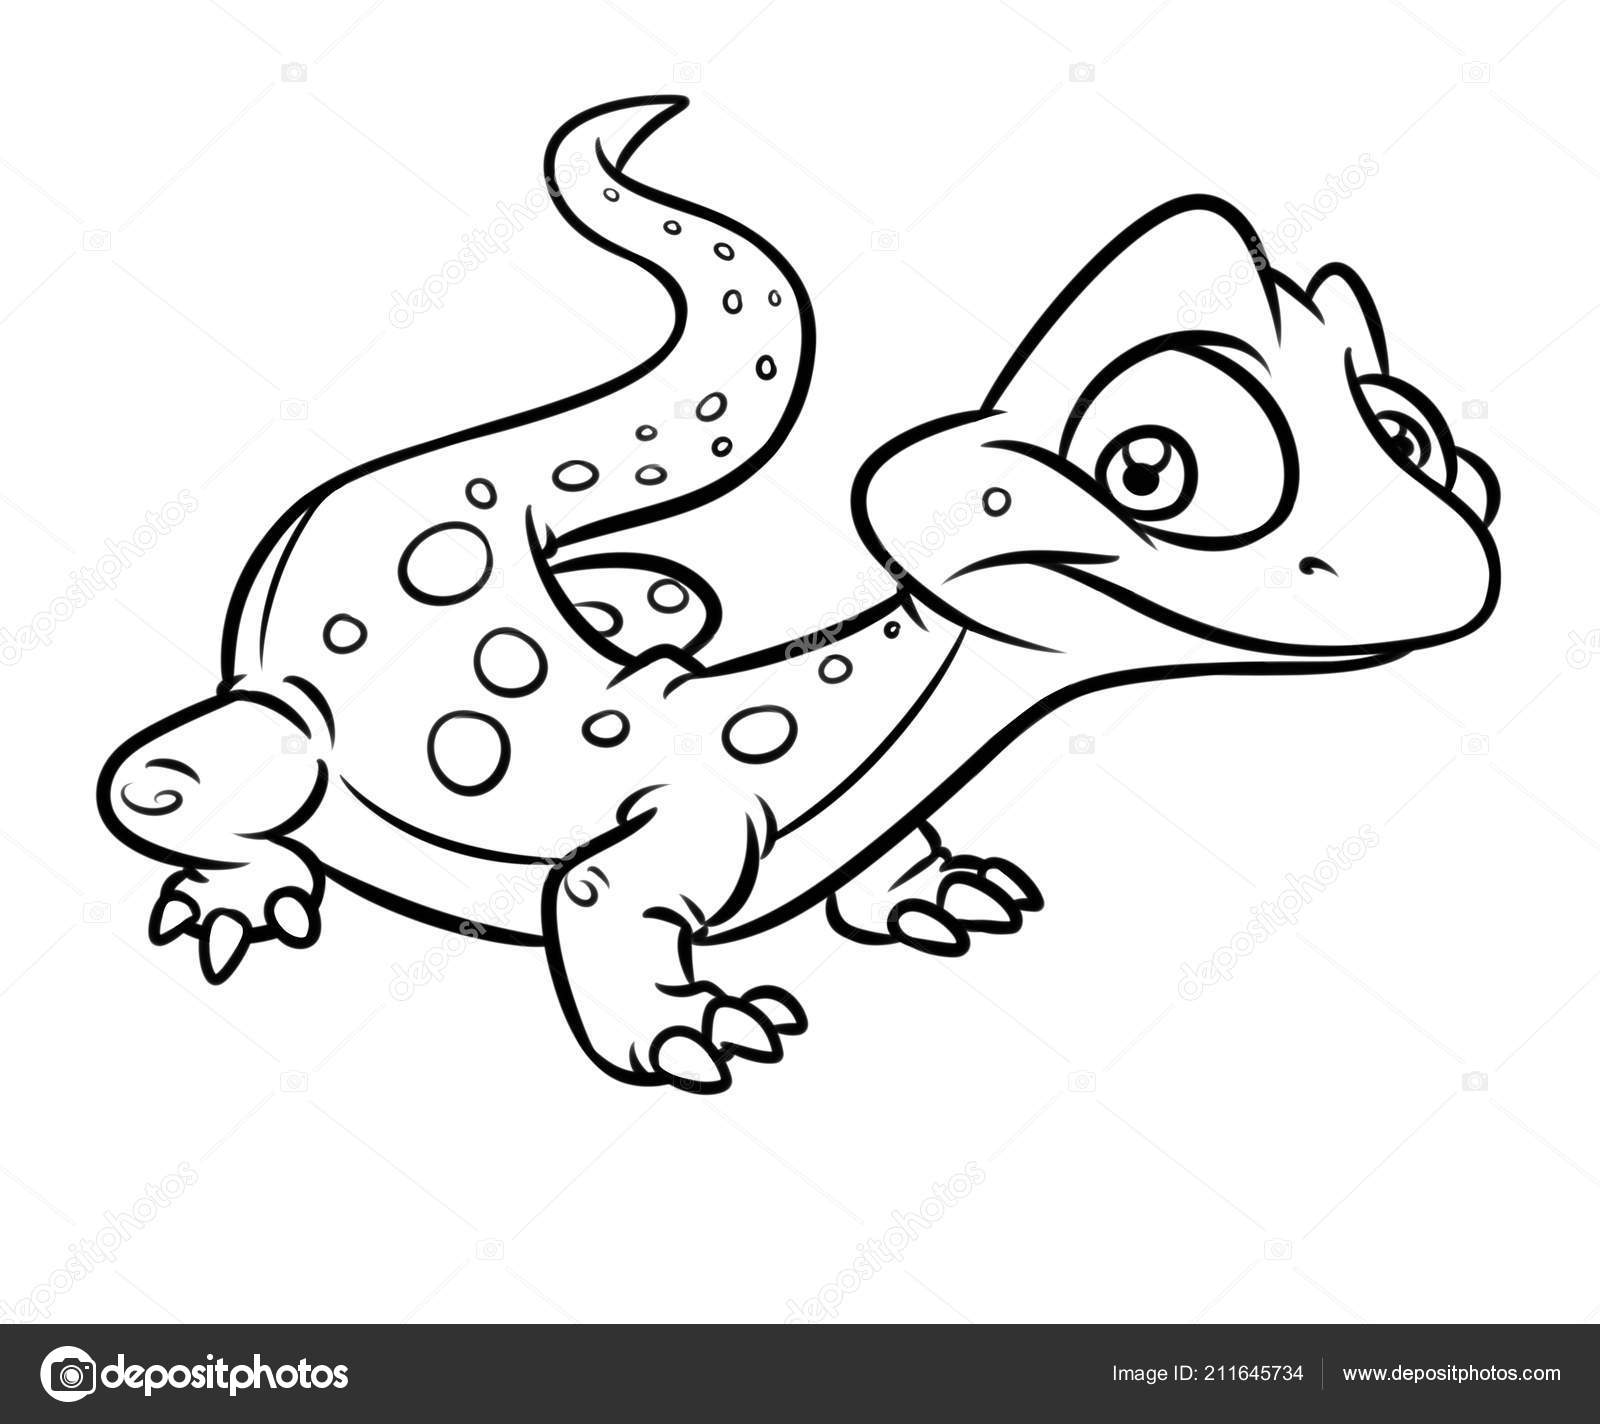 picture of a lizard to colour in animal coloring pages lizard coloring pages of a picture lizard colour in to